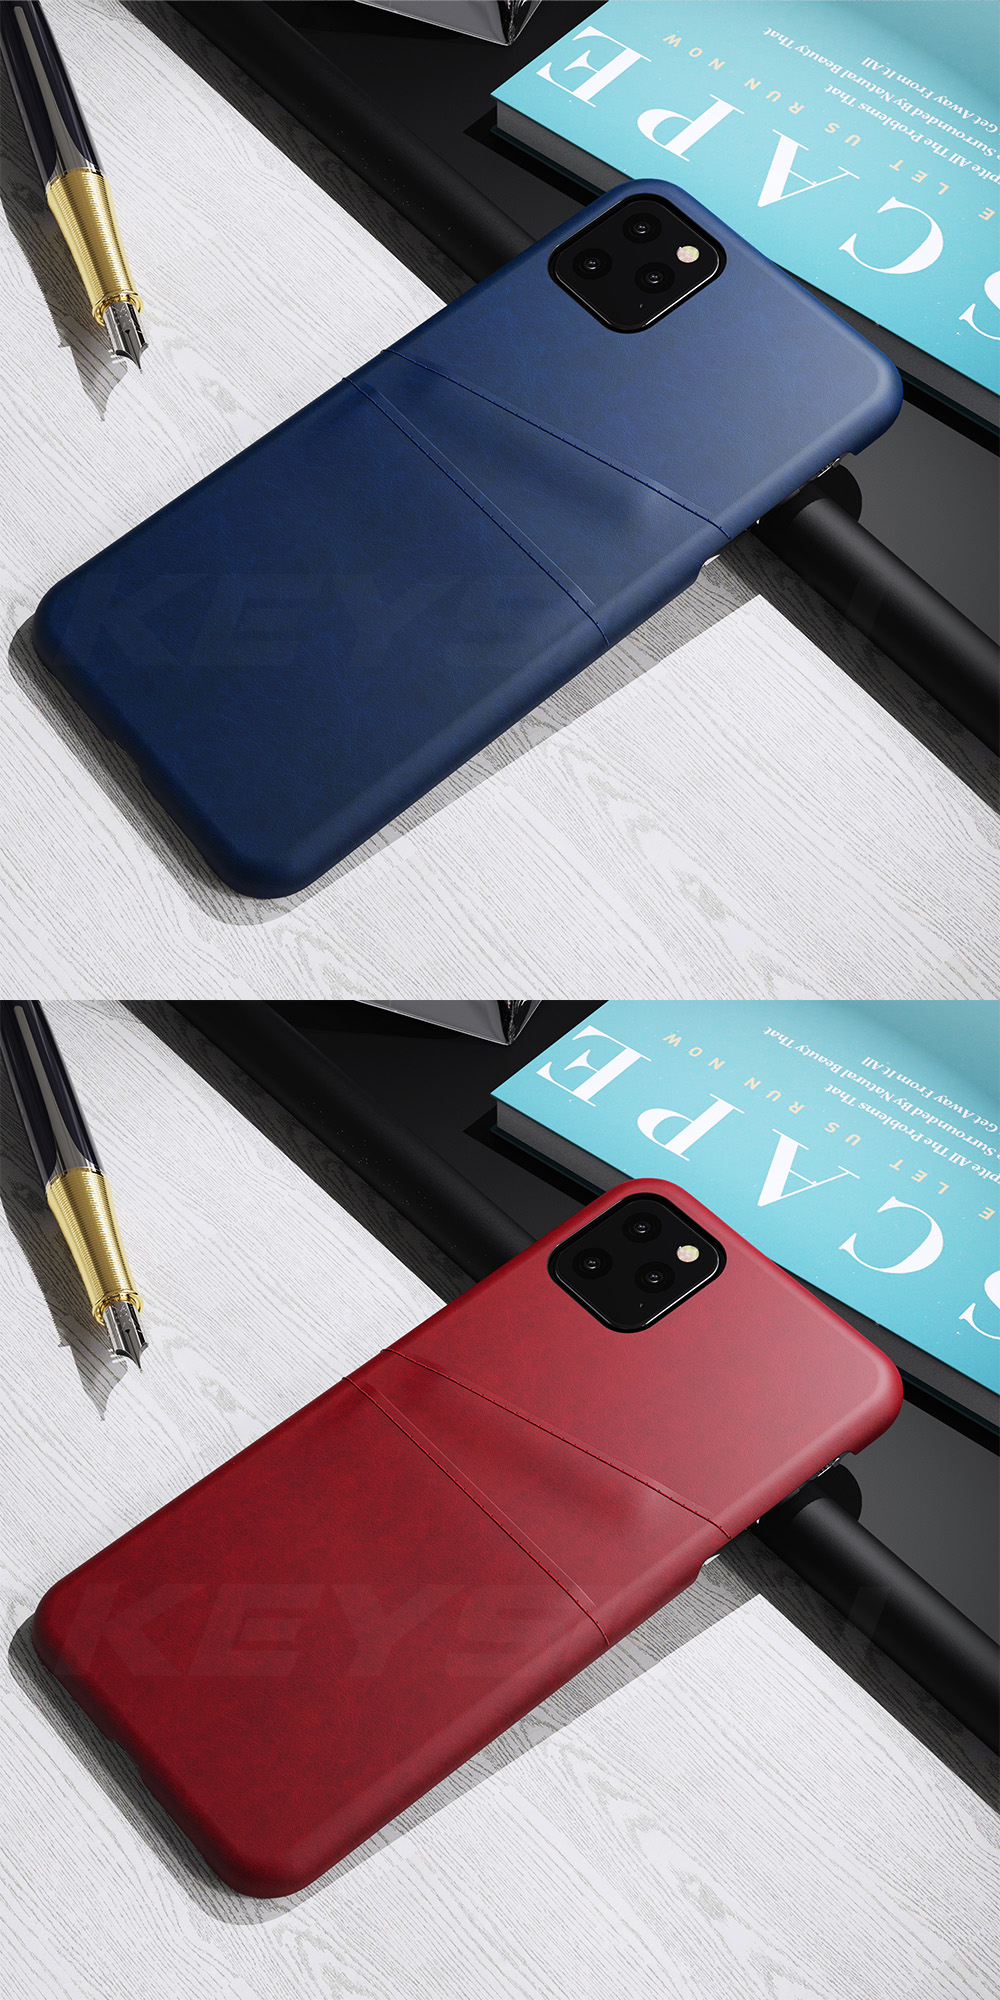 KEYSION Leather Card Pocket Cases for iPhone 11/11 Pro/11 Pro Max 15